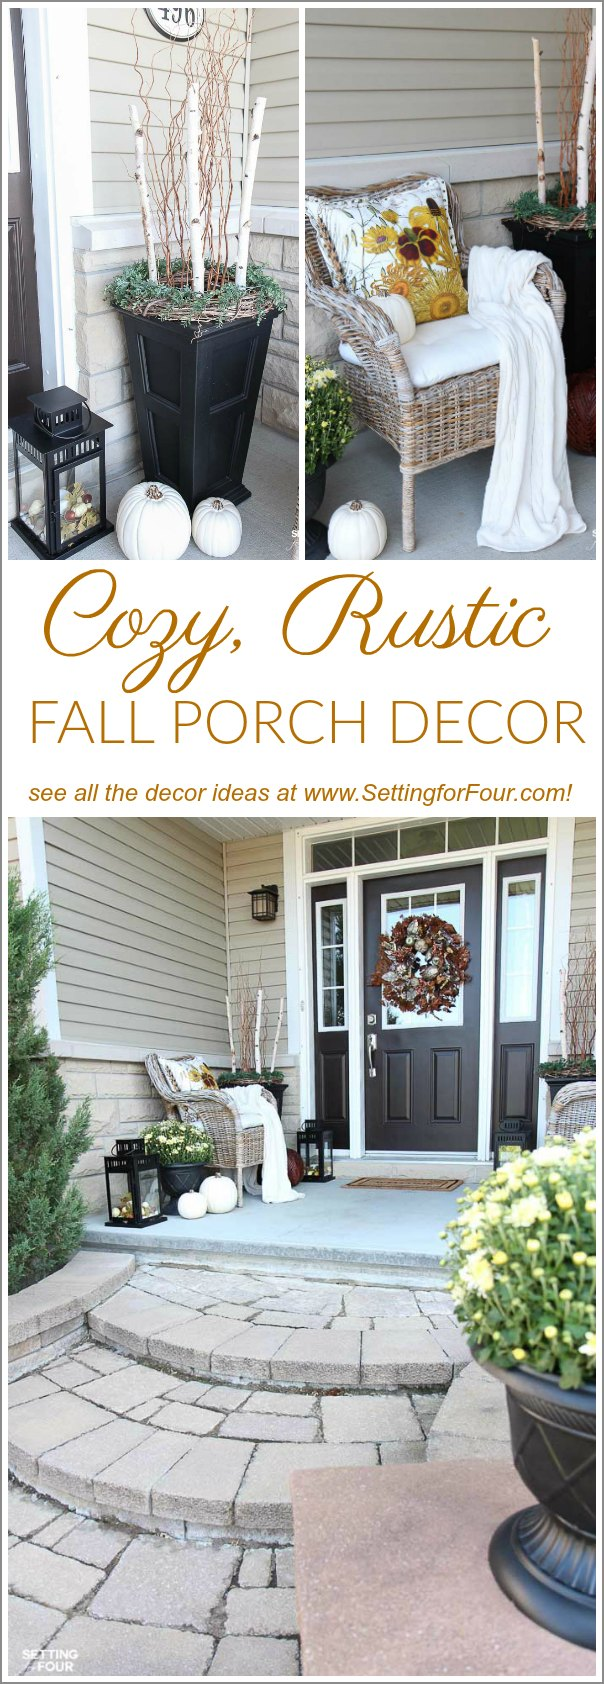 Cozy Rustic Fall Porch Decor - Setting for Four